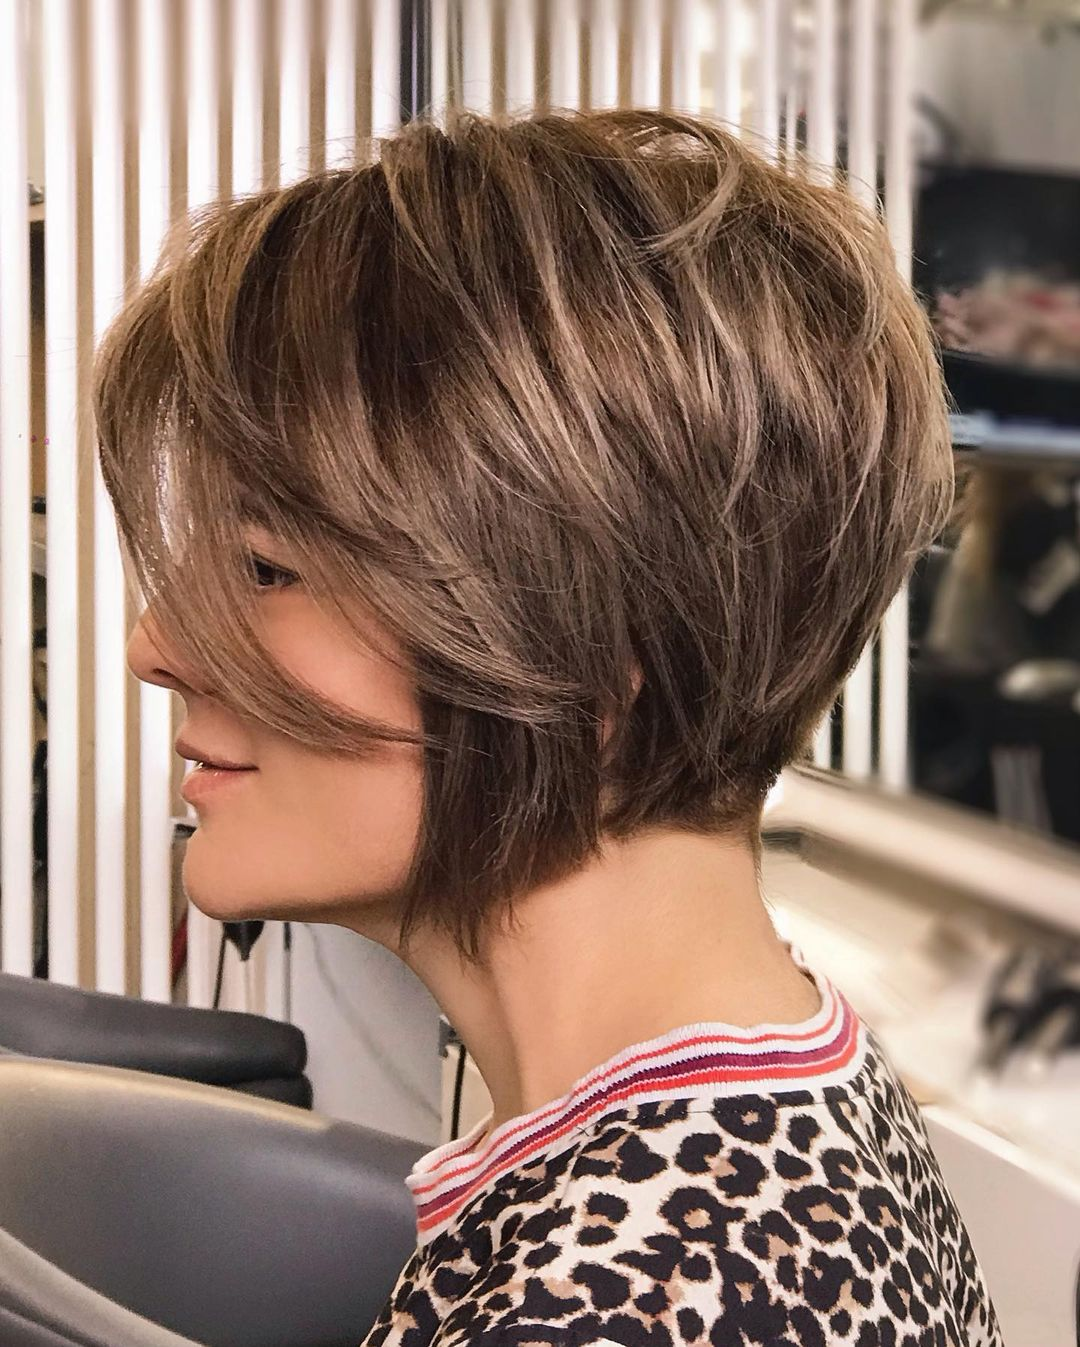 Stylish Short Haircuts for Thick Hair - Cute Short Hairstyles for Women